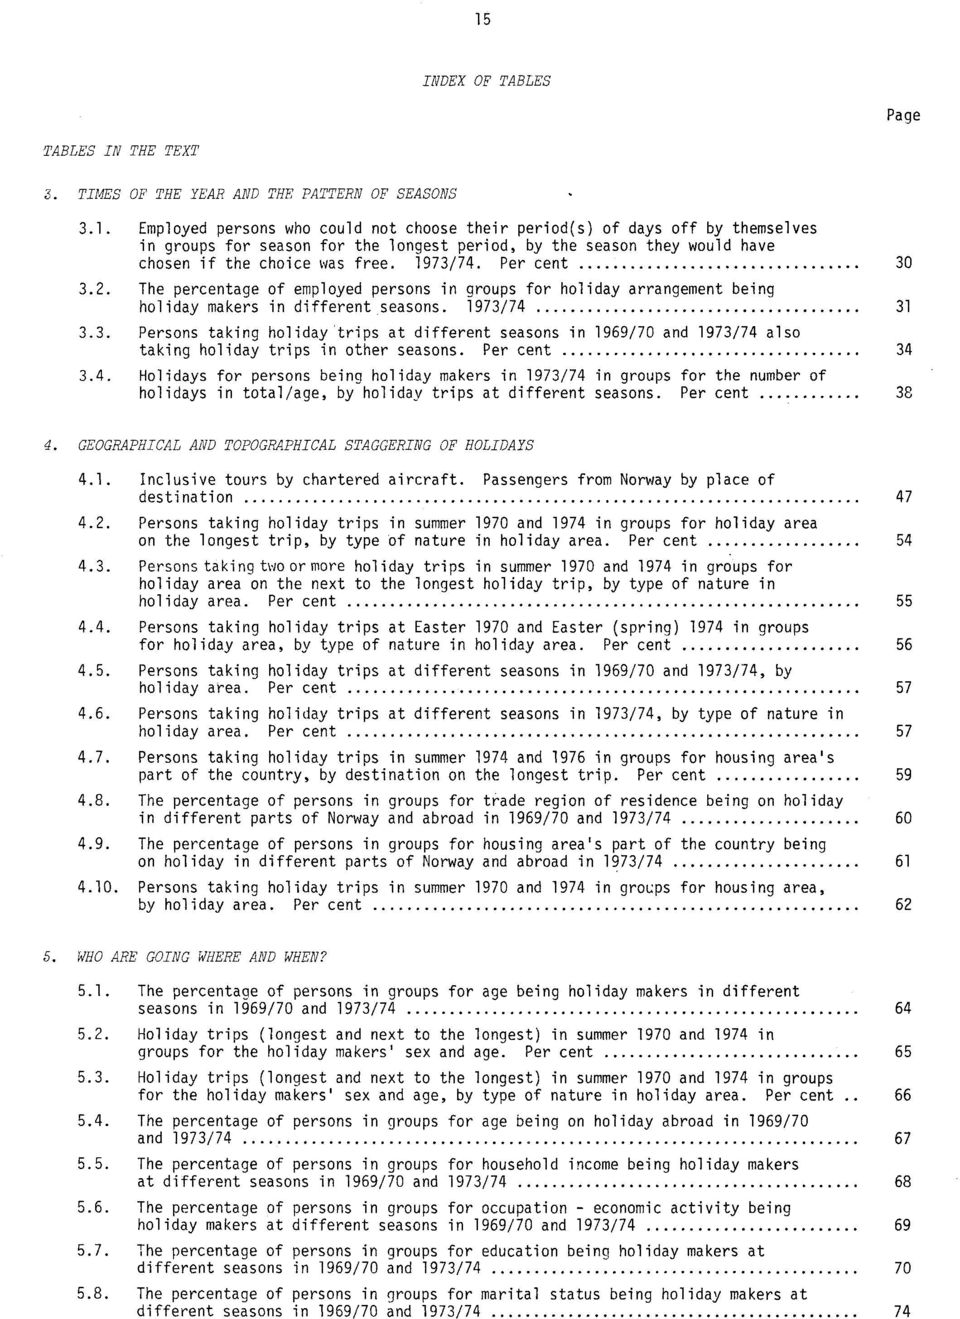 Per cent 34 3.4. Holidays for persons being holiday makers in 1973/74 in groups for the number of holidays in total/age, by holiday trips at different seasons. Per cent 38 4.